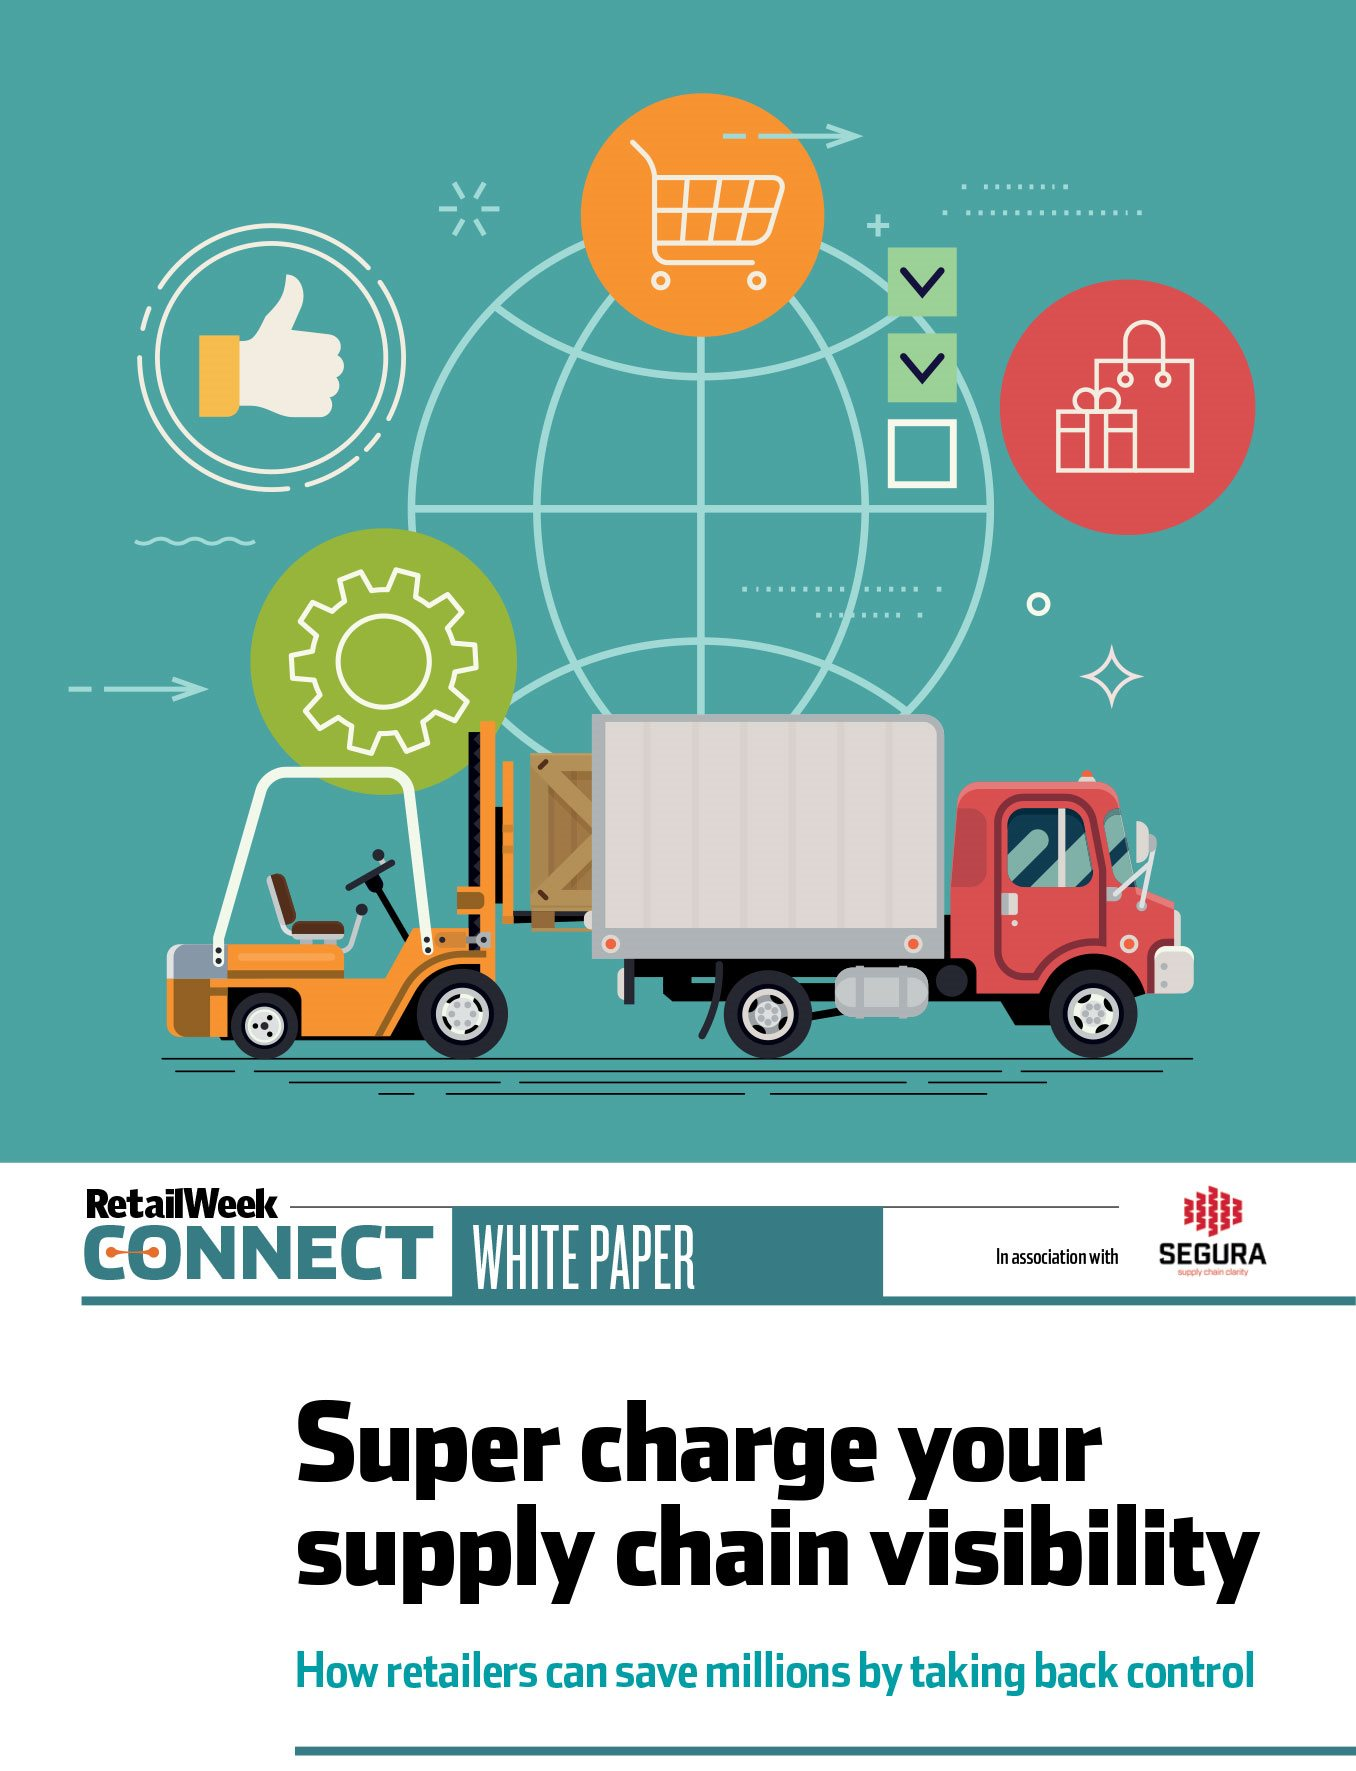 Super charge your supply chain visibility